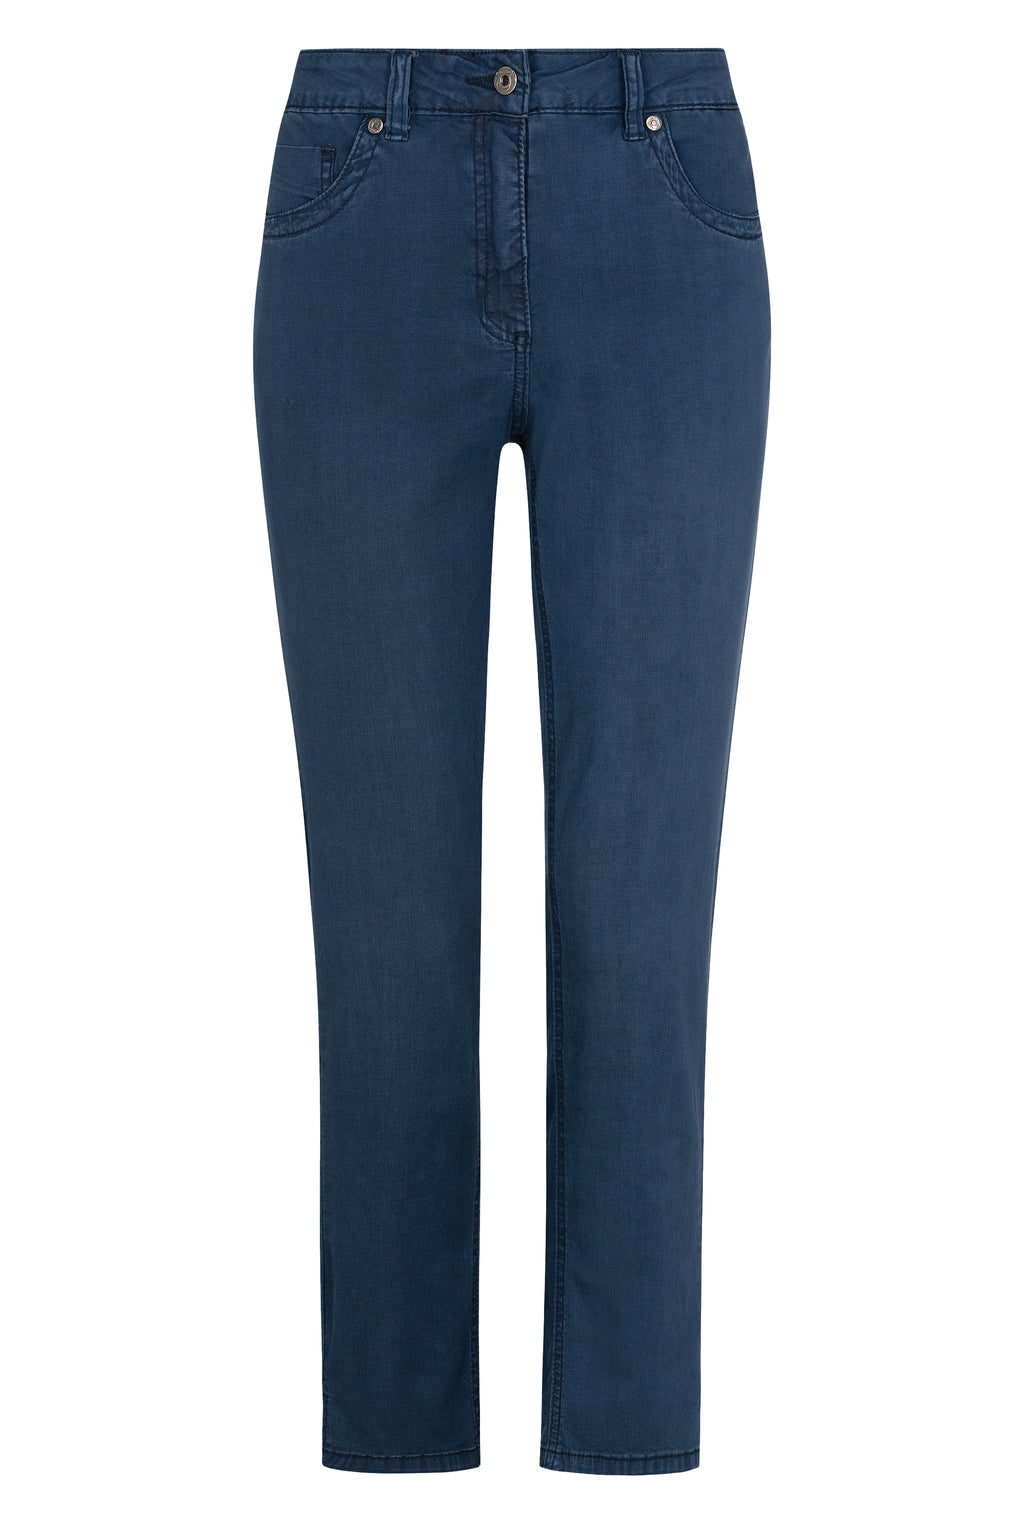 Damen Jeans Rita 7/8 Light Denim